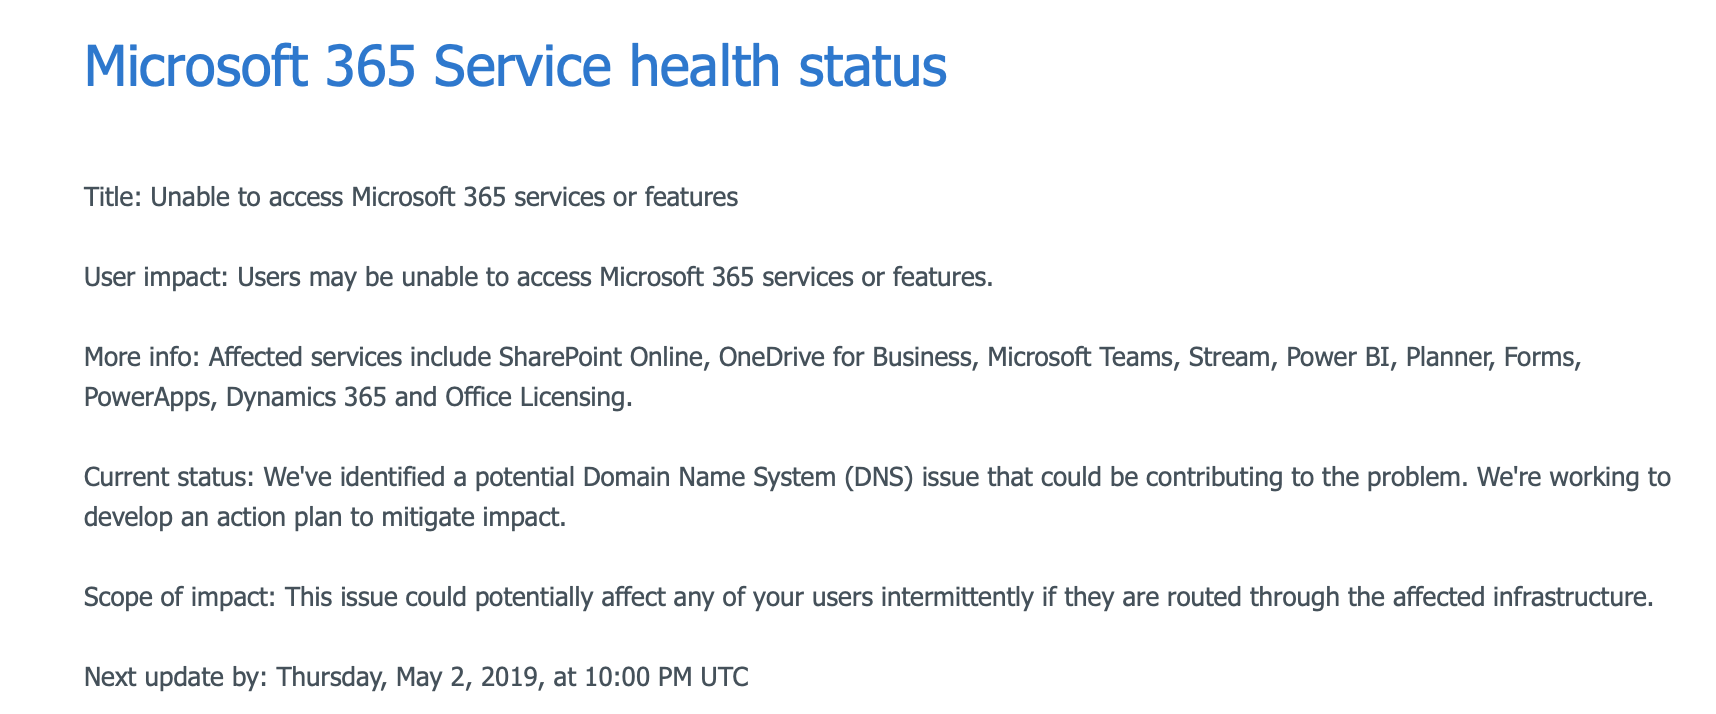 Microsoft Outage: Azure, Office 365 Sharepoint, OneDrive and